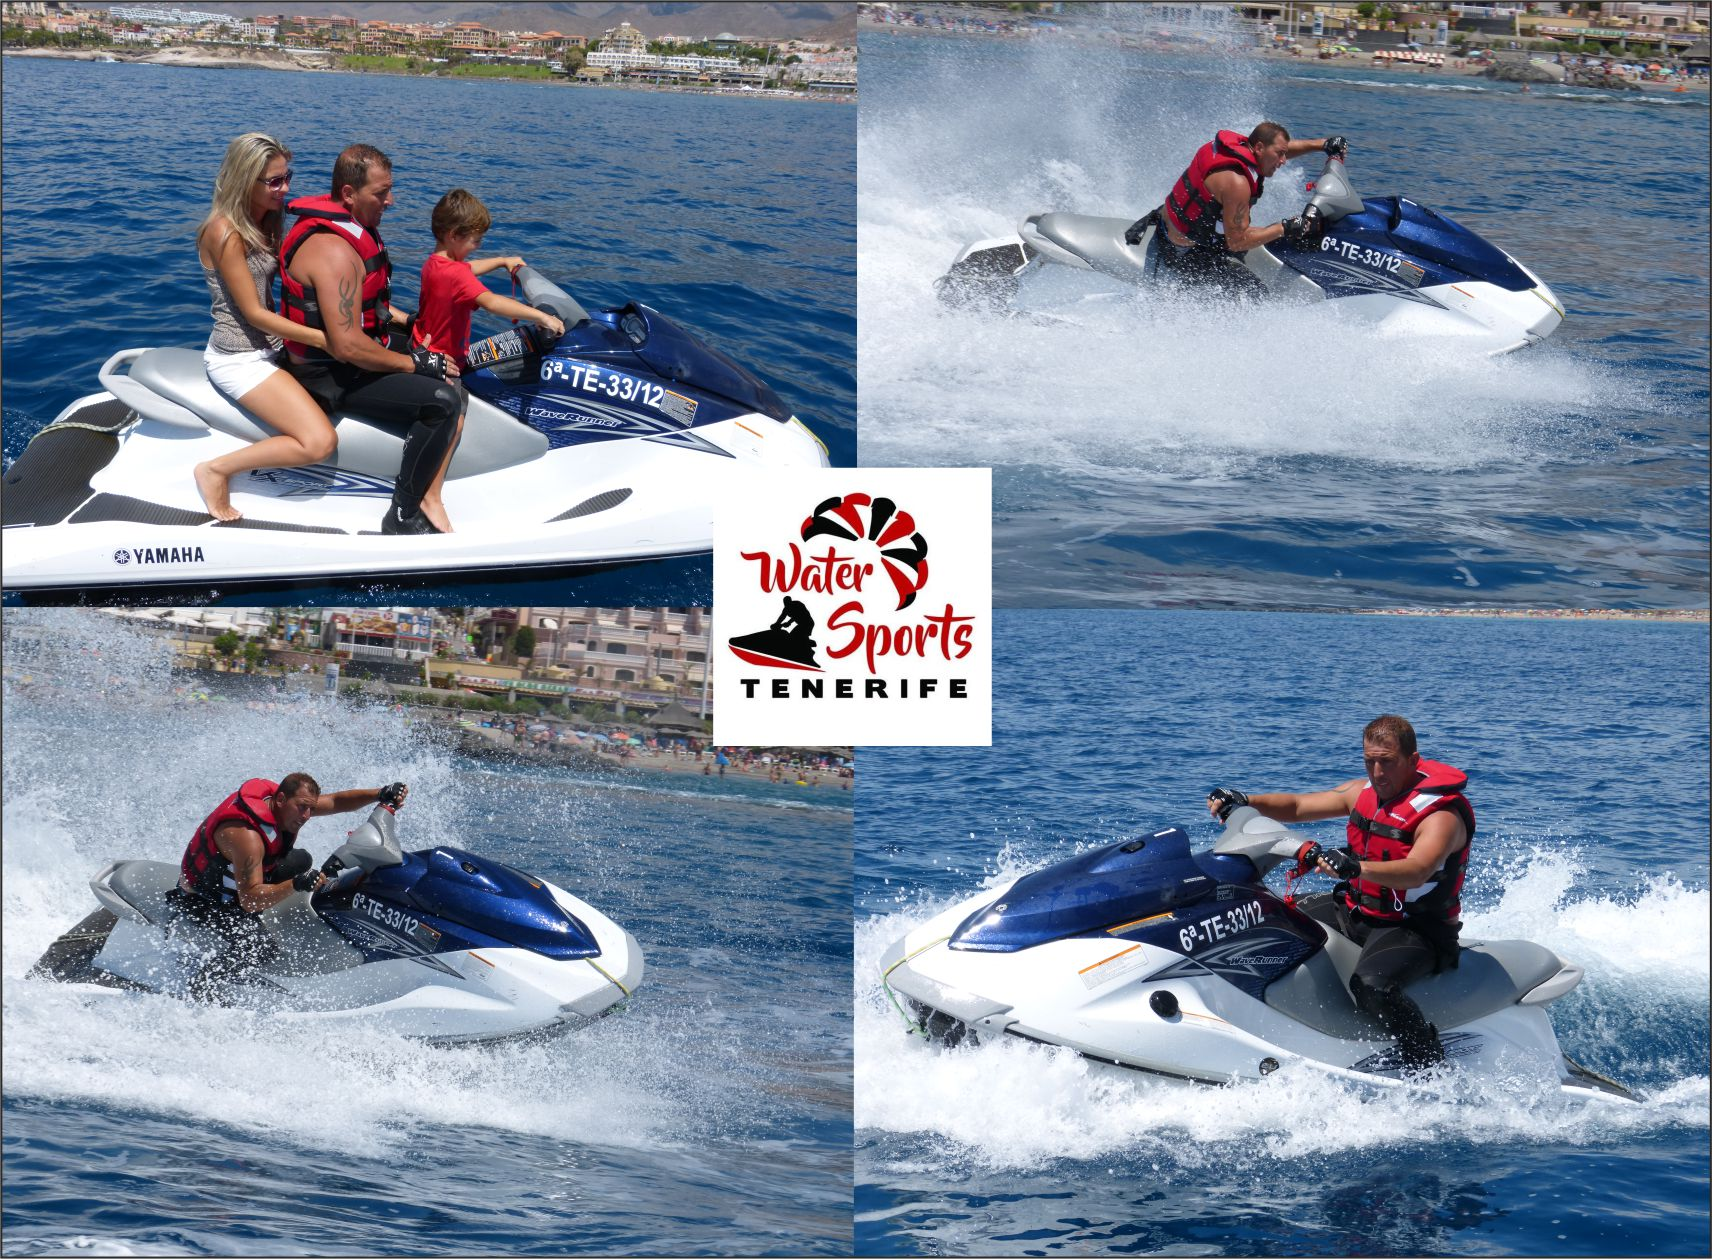 water sports tenerife islas canarias watersport en arona adeje